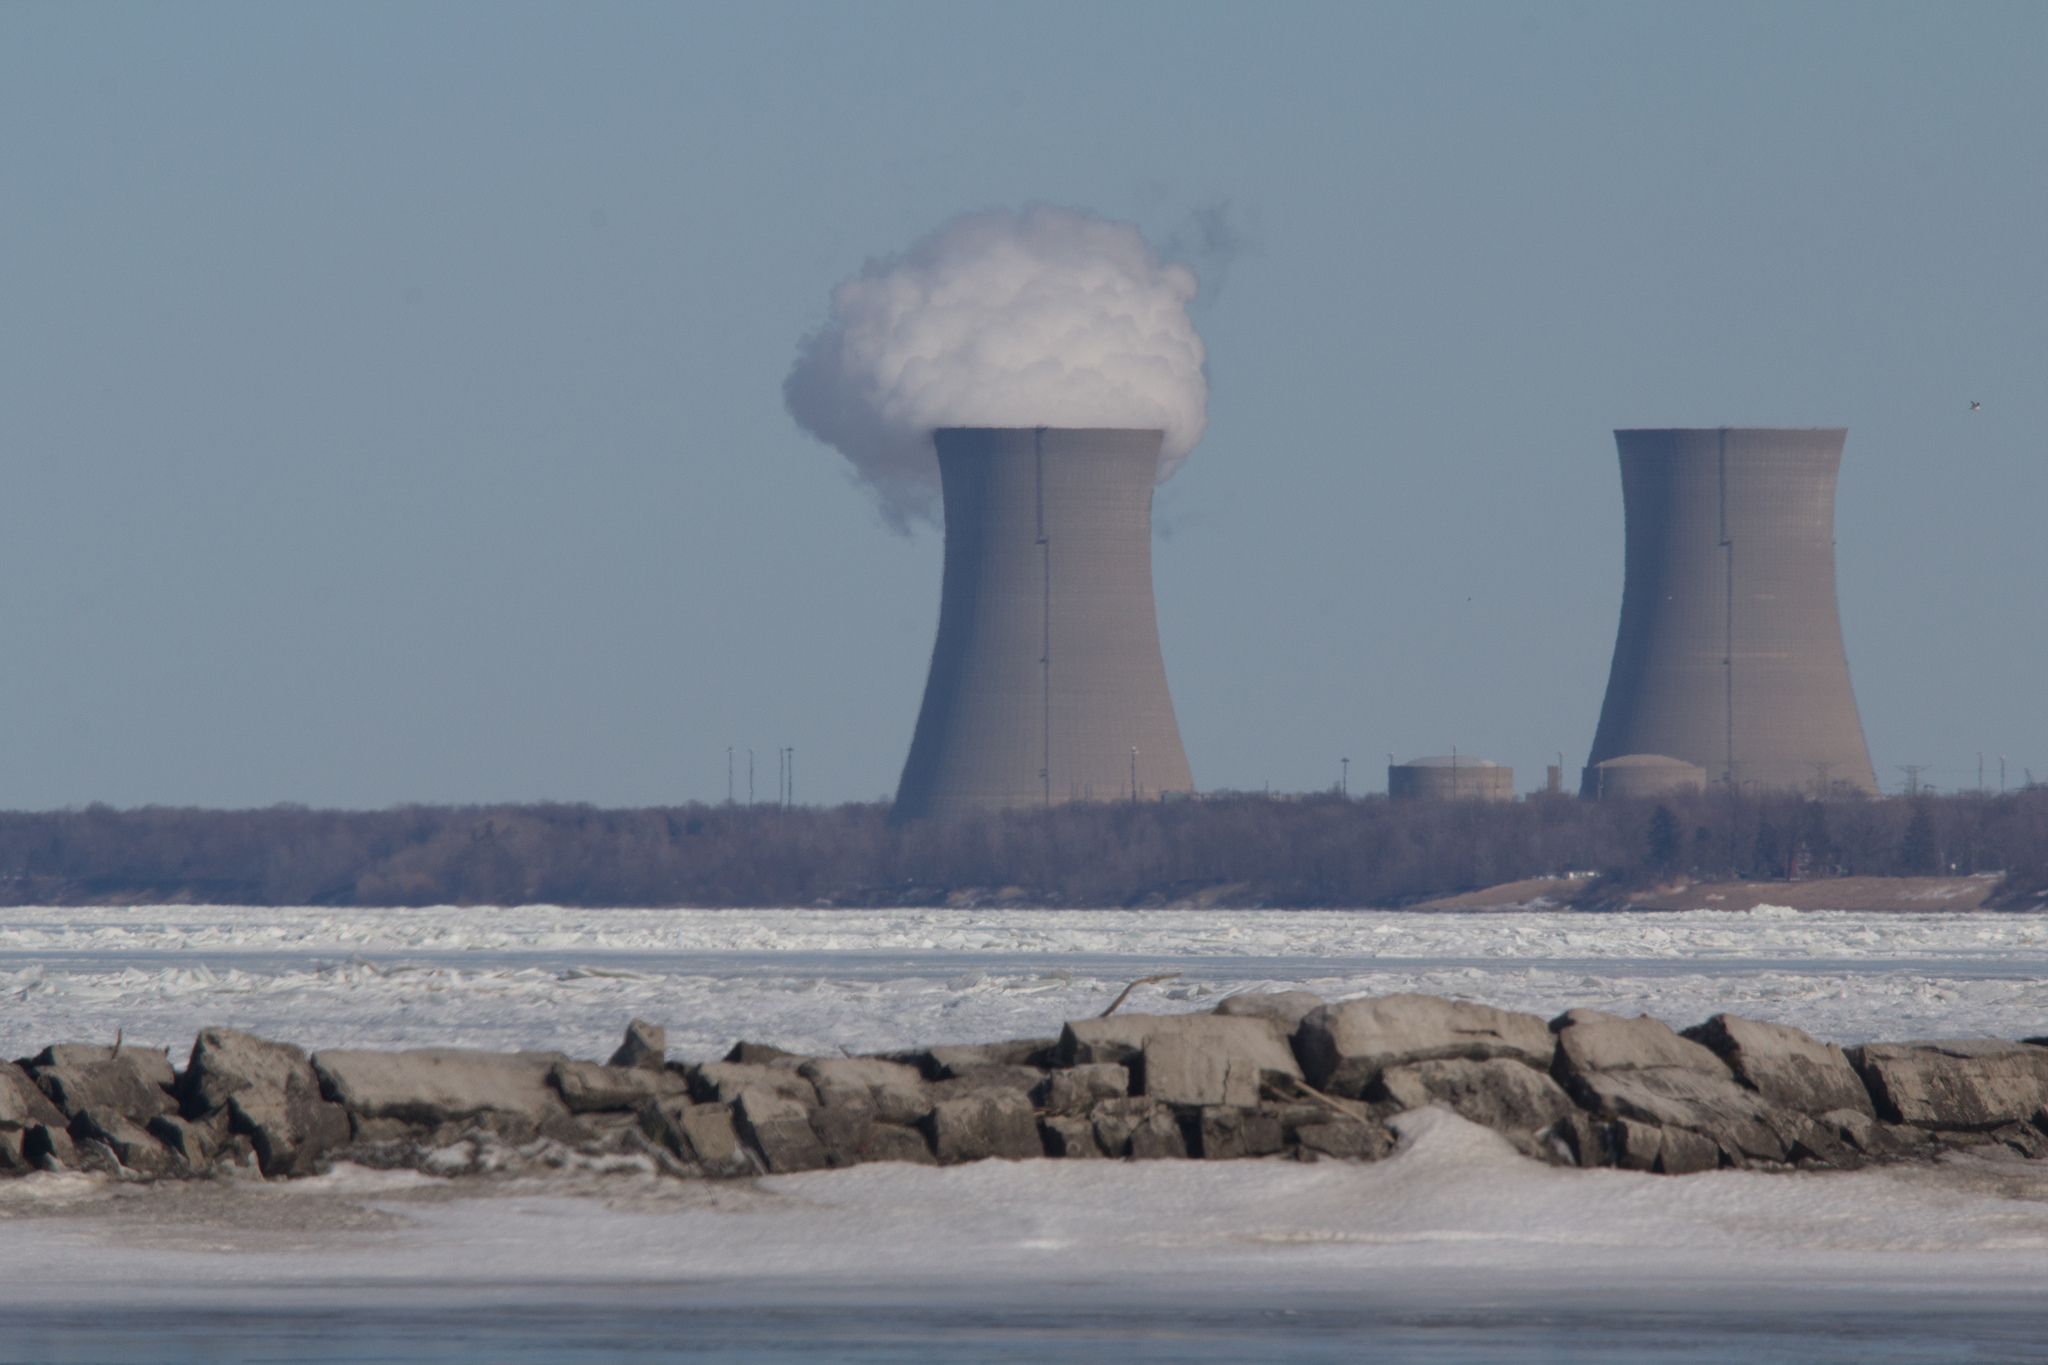 Carbon pricing not enough to support nuclear power